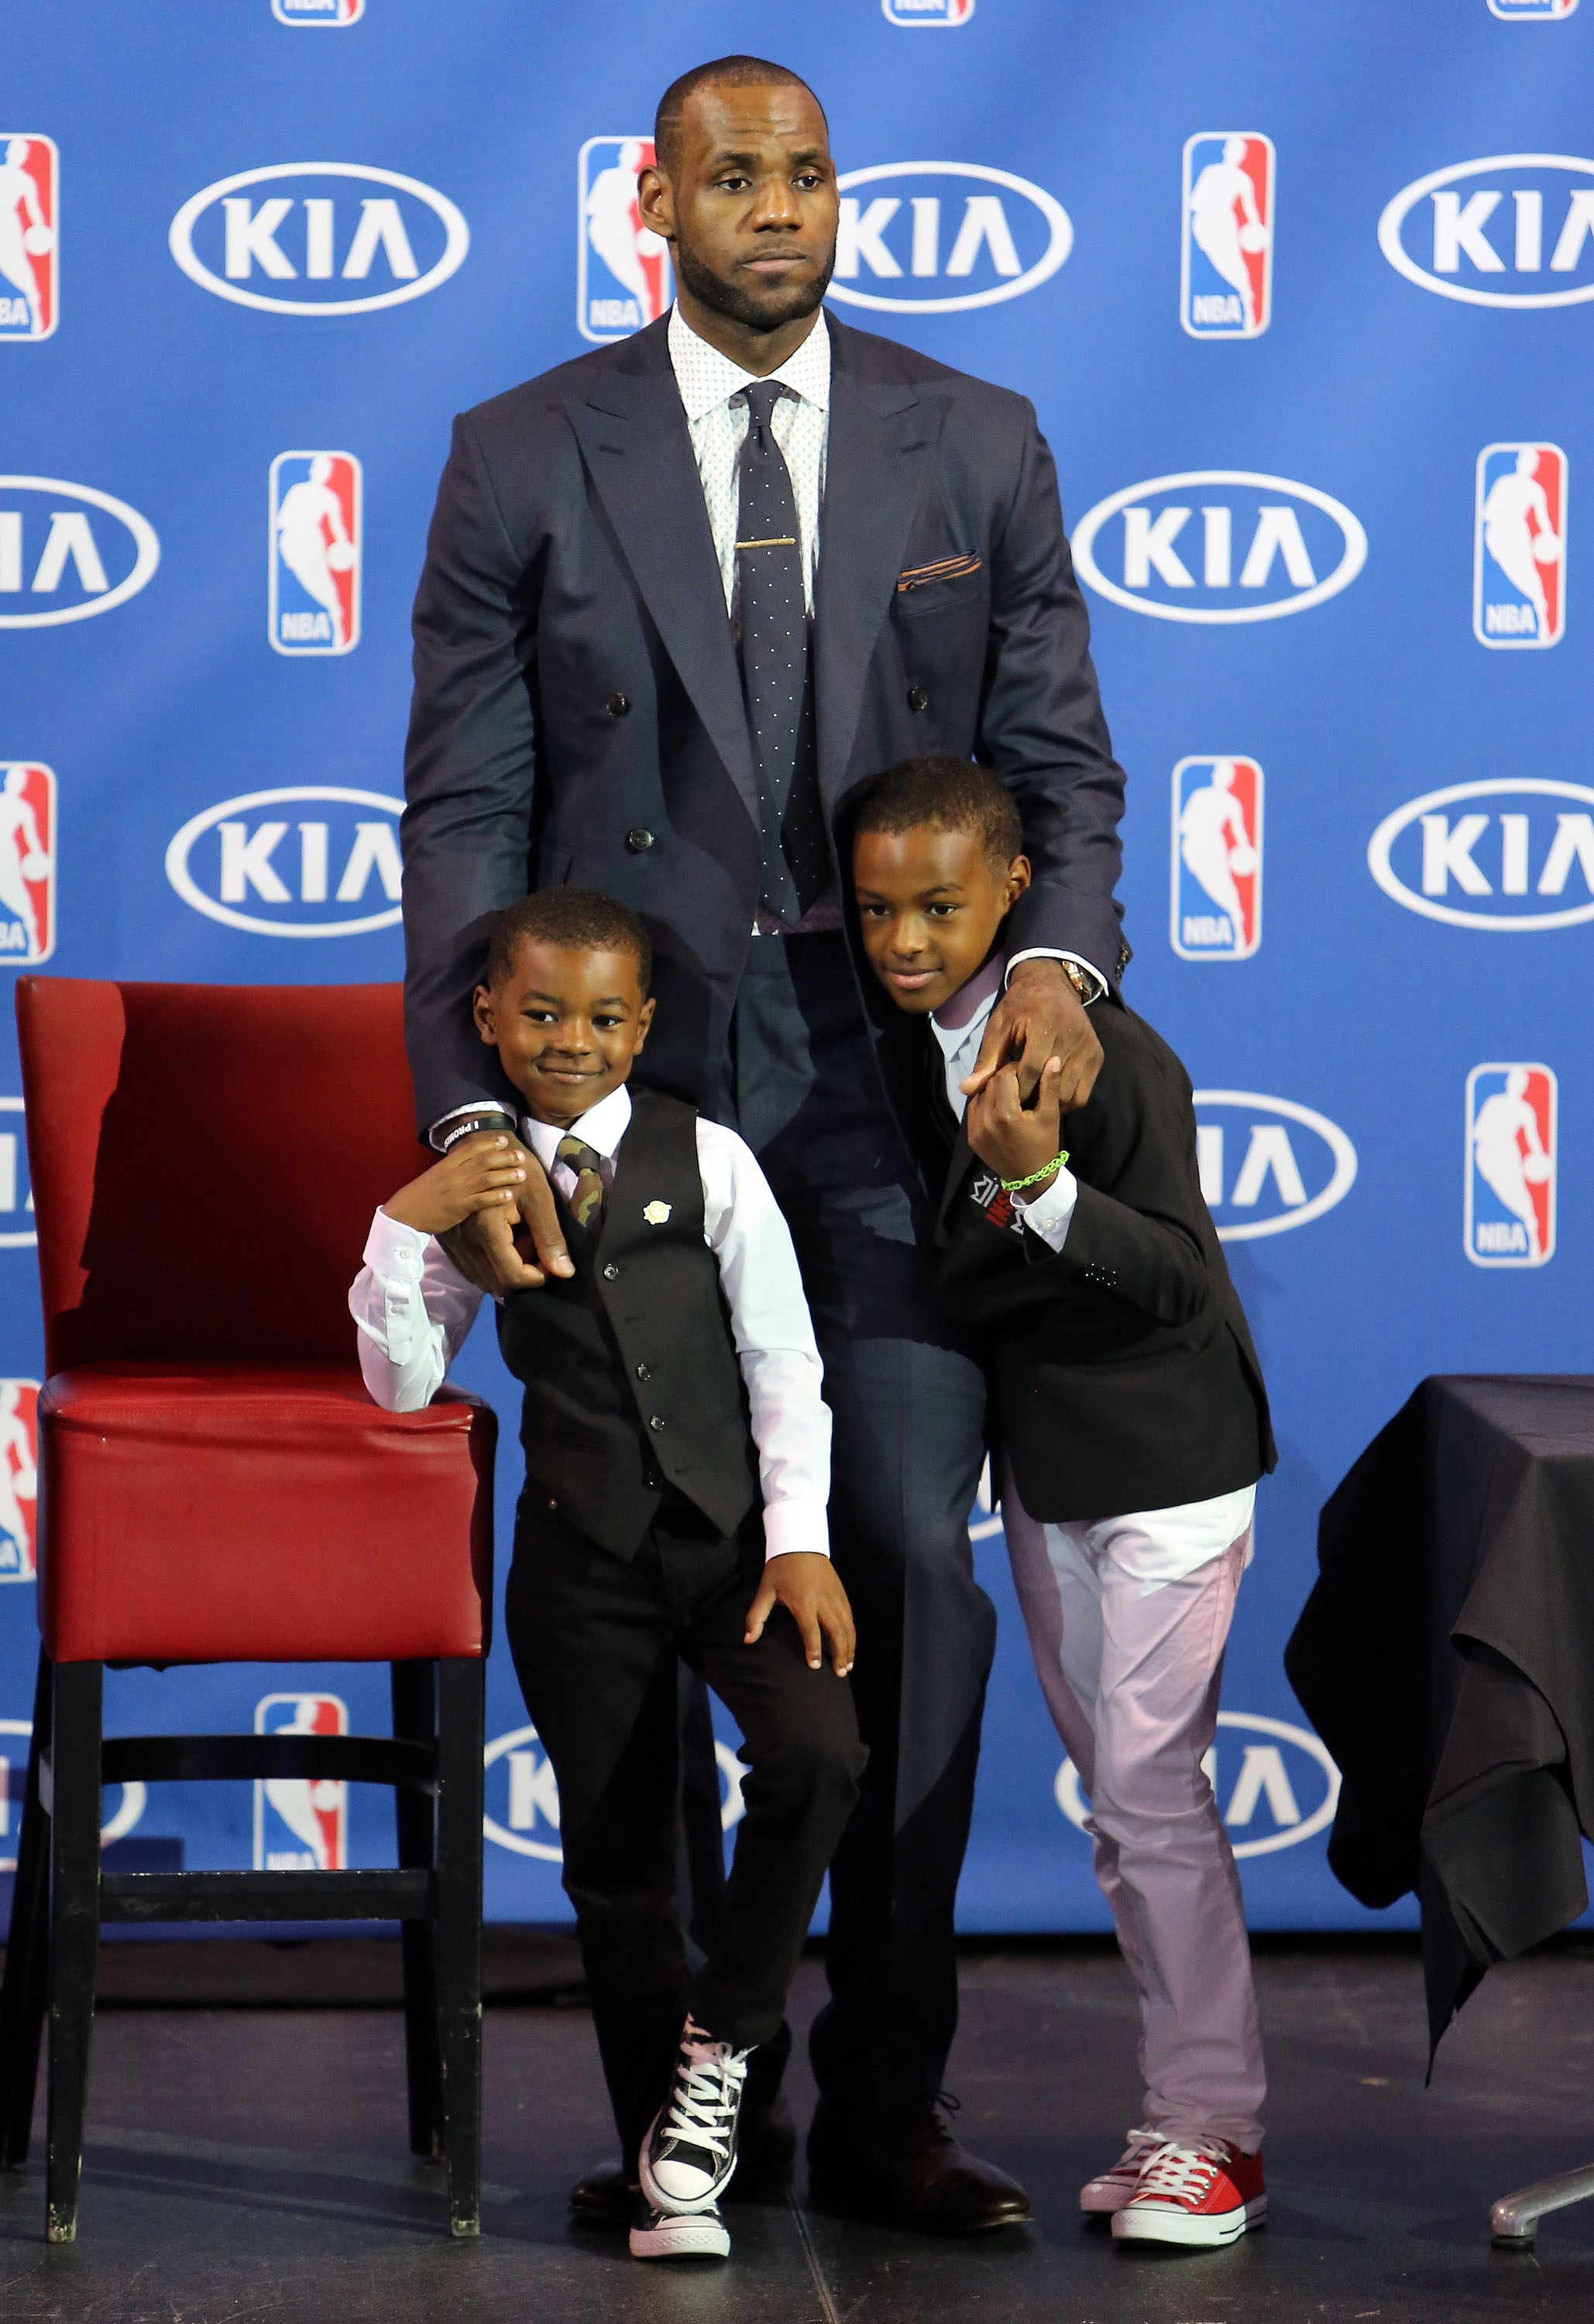 LeBron James, center, his sons Bryce James, left, and LeBron James Jr. attend a press conference to announce his Fourth NBA MVP Award in Miami on May 5, 2013